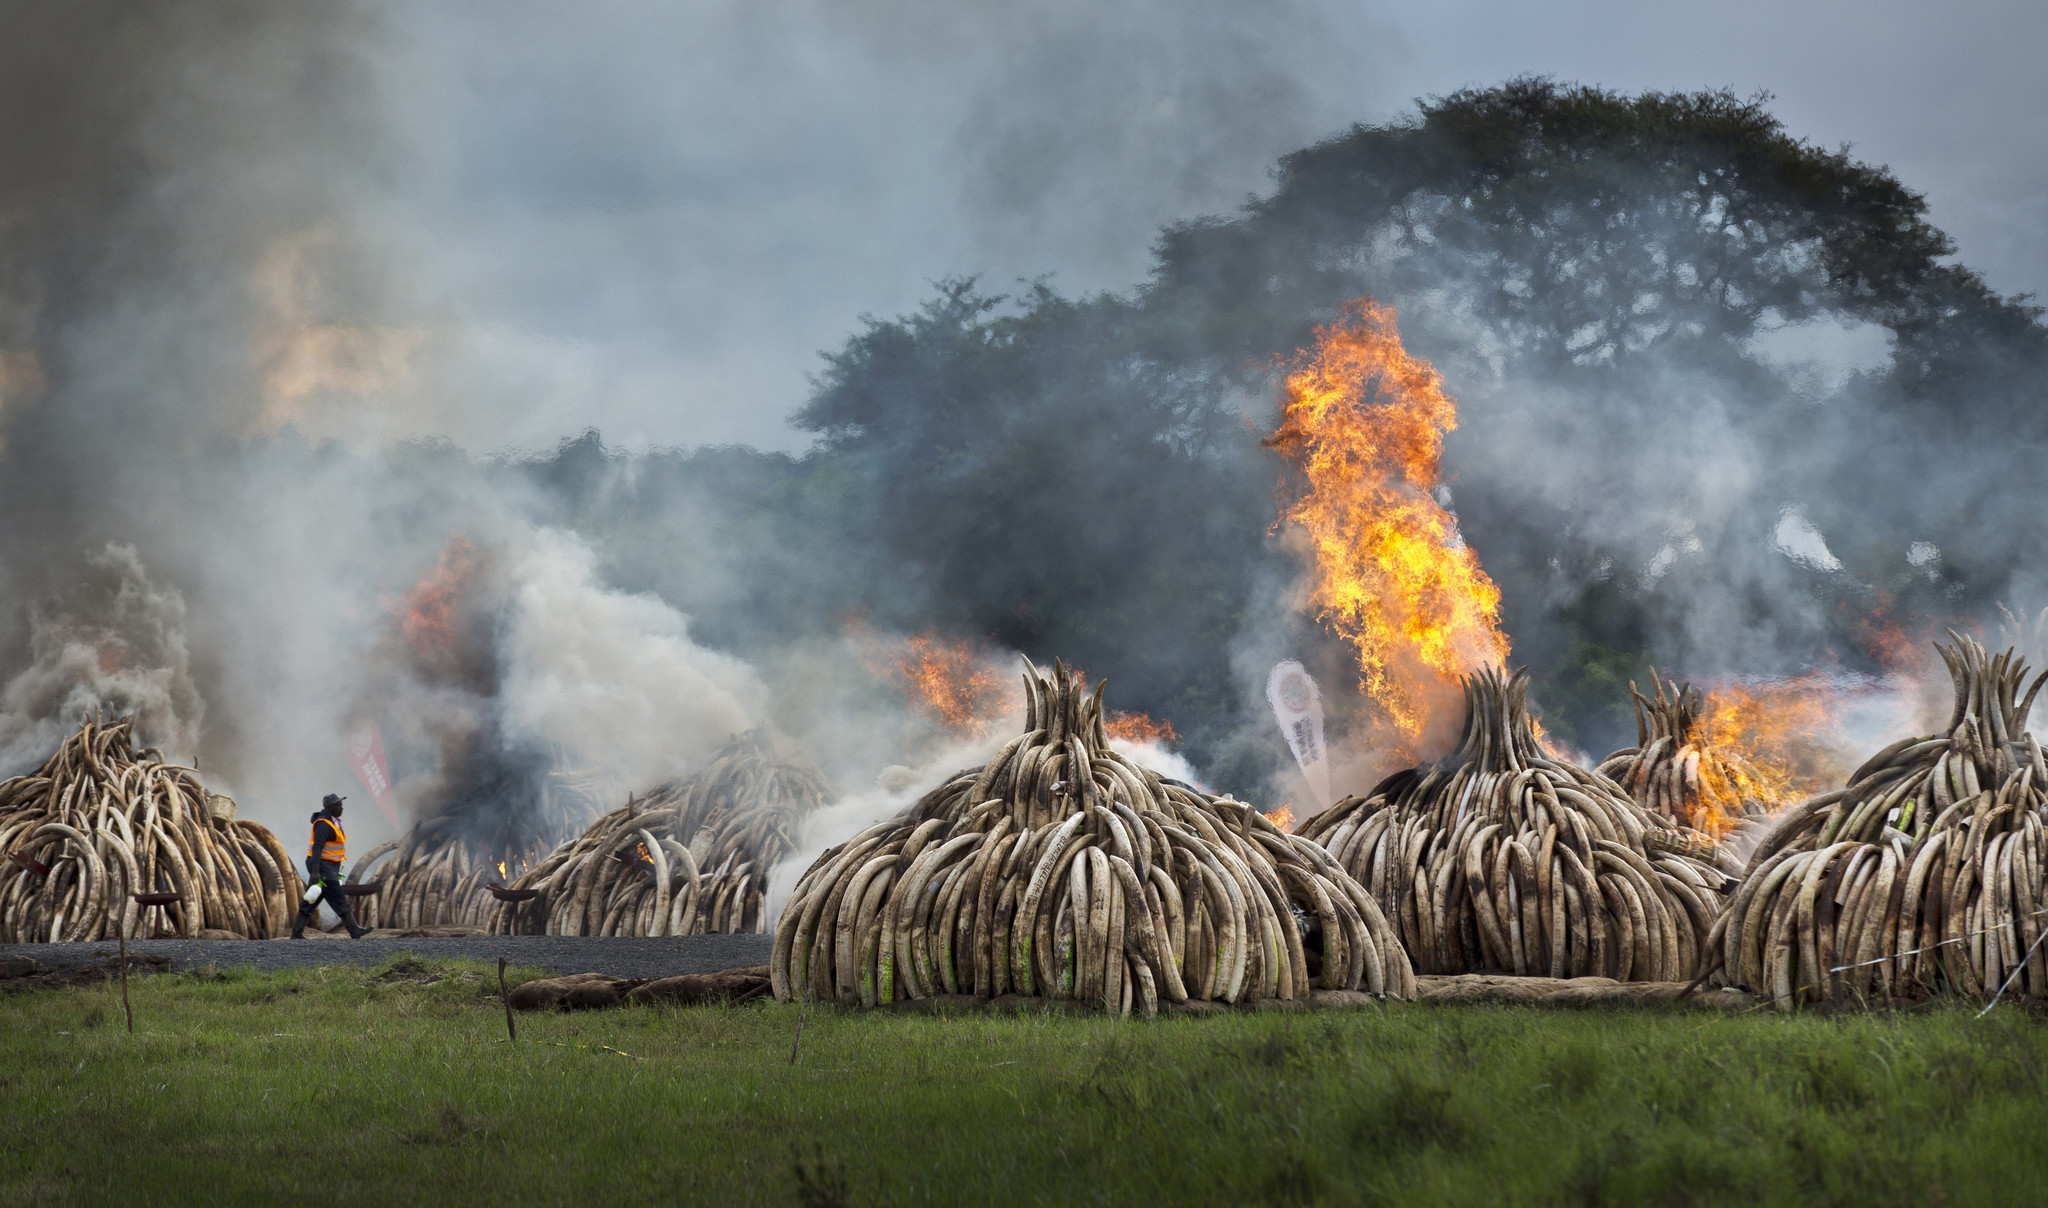 image of Kenyan ivory stockpiles being burned as a statement to dealers. Taken from  http://www.trbimg.com/img-5724cce4/turbine/ct-ivory-burned-kenya-20160430